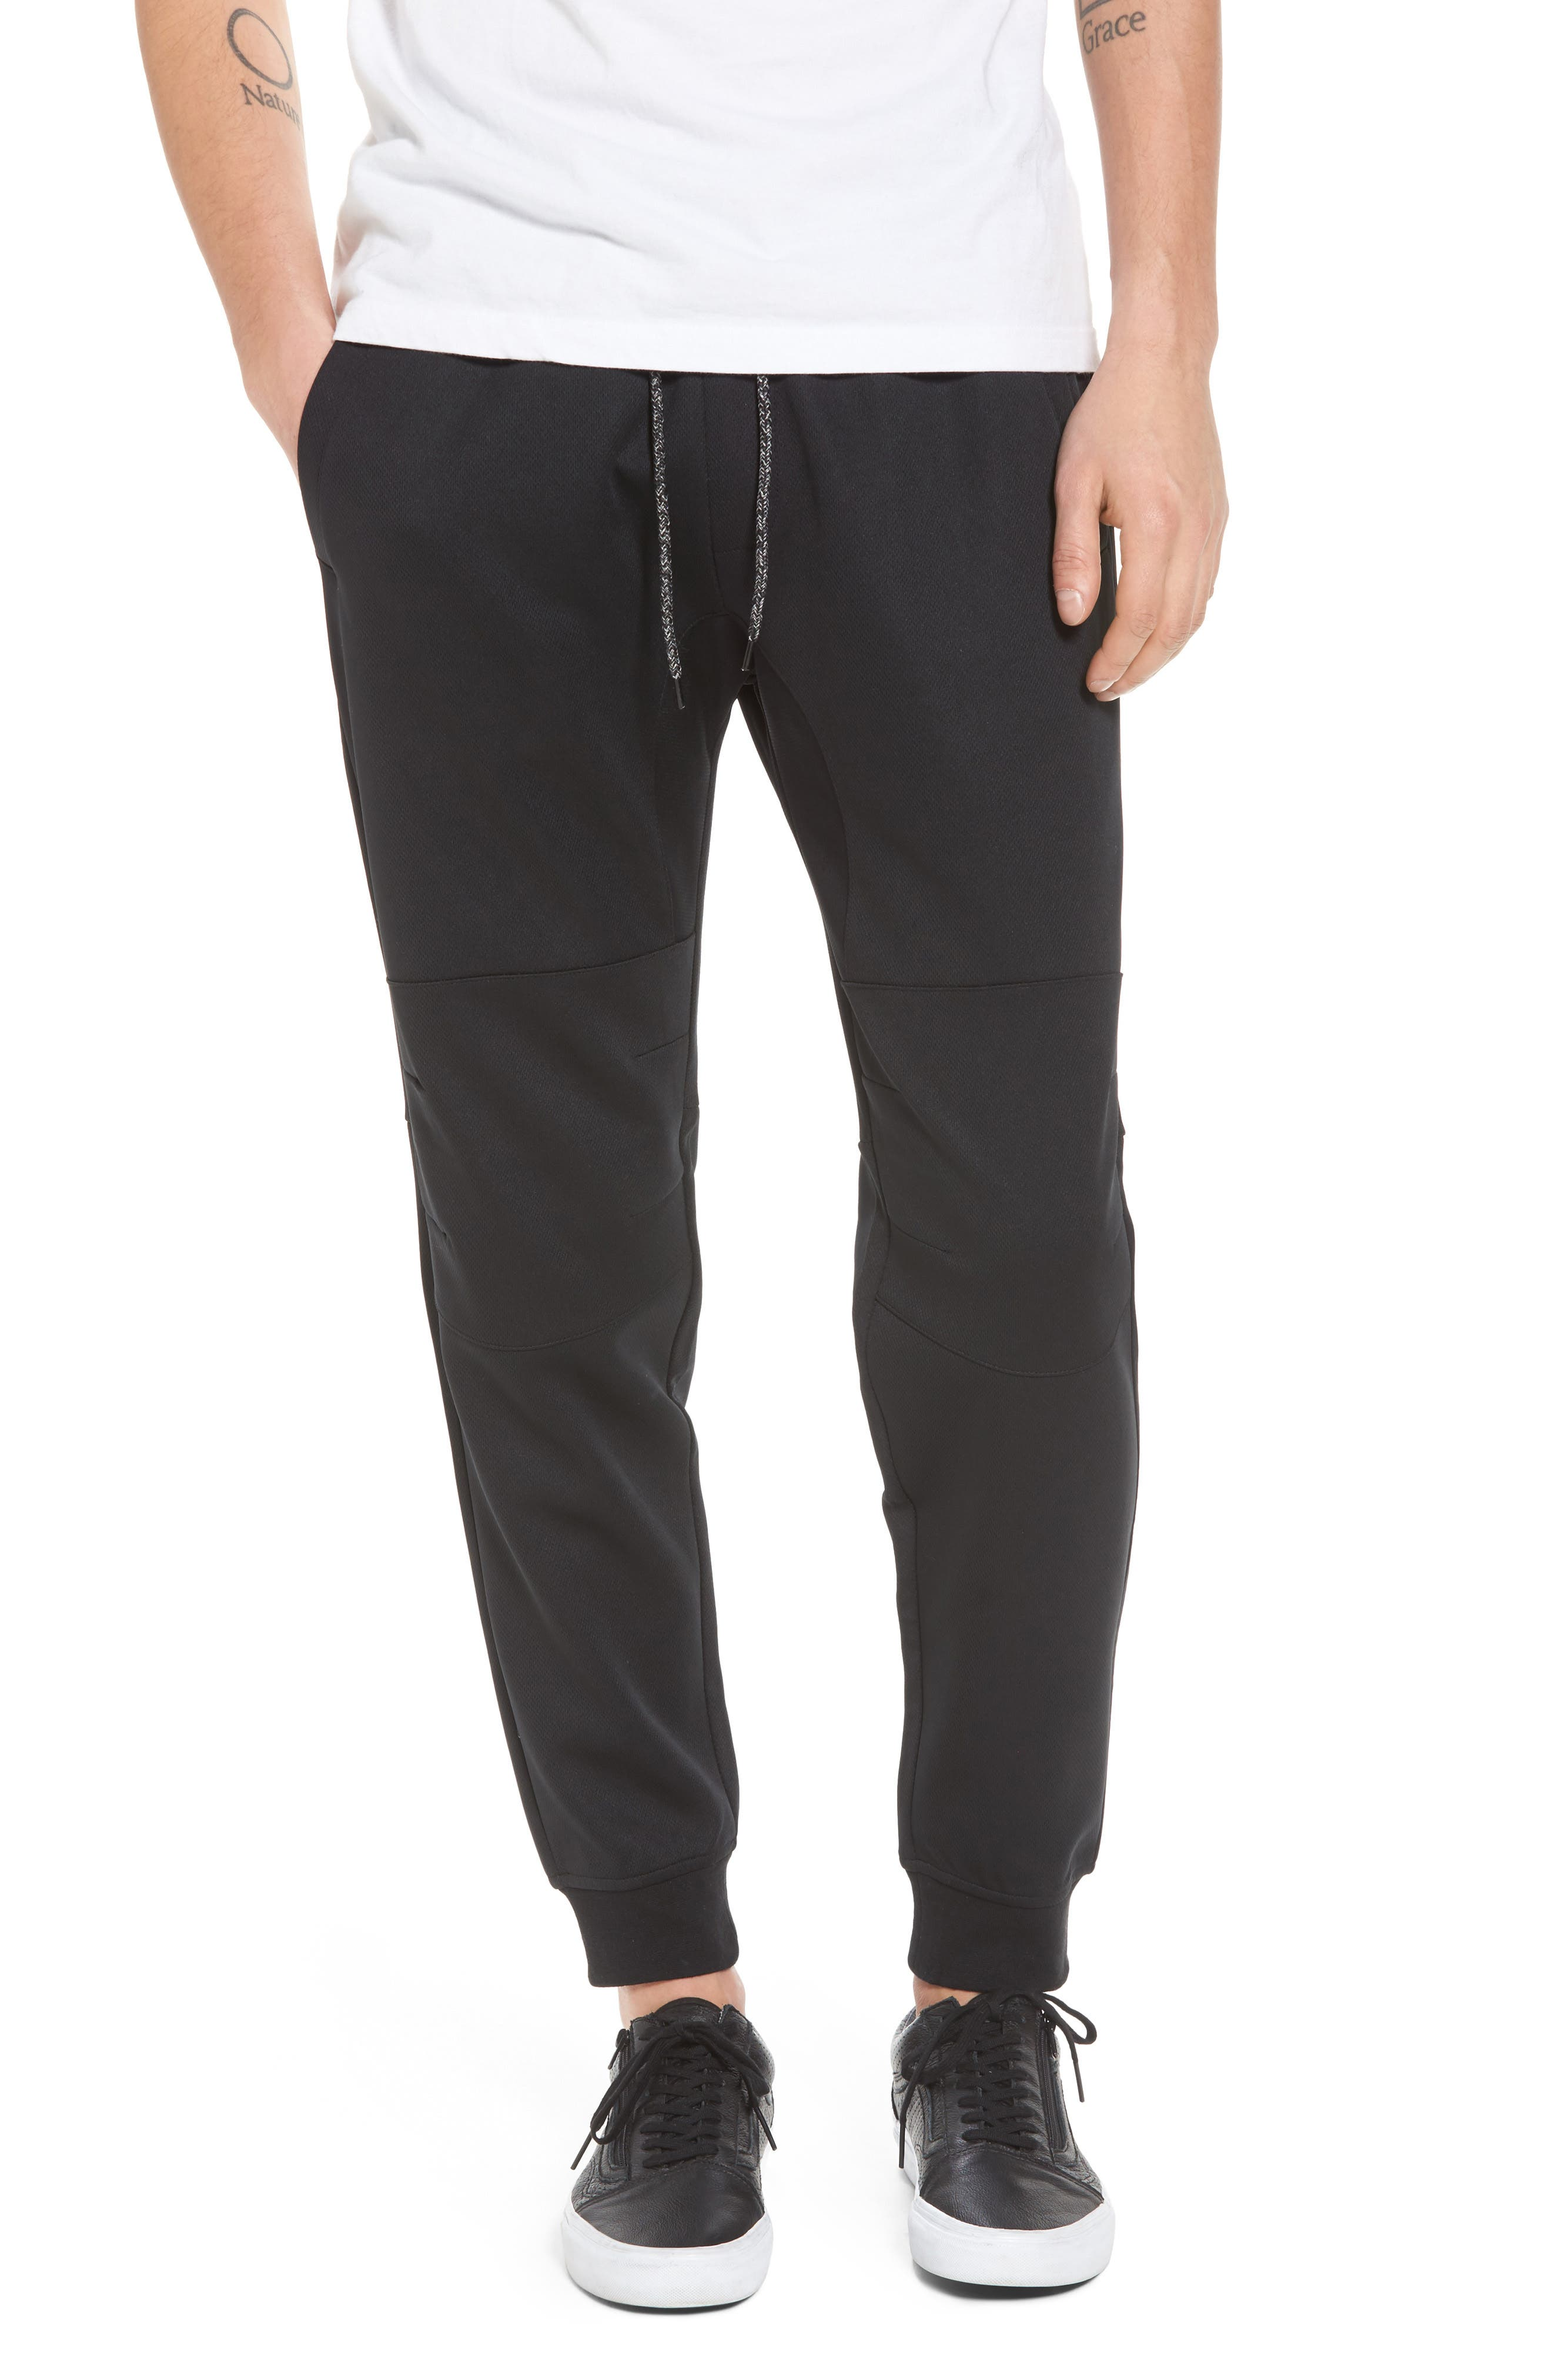 Alternate Image 1 Selected - The Rail Mesh Jogger Pants